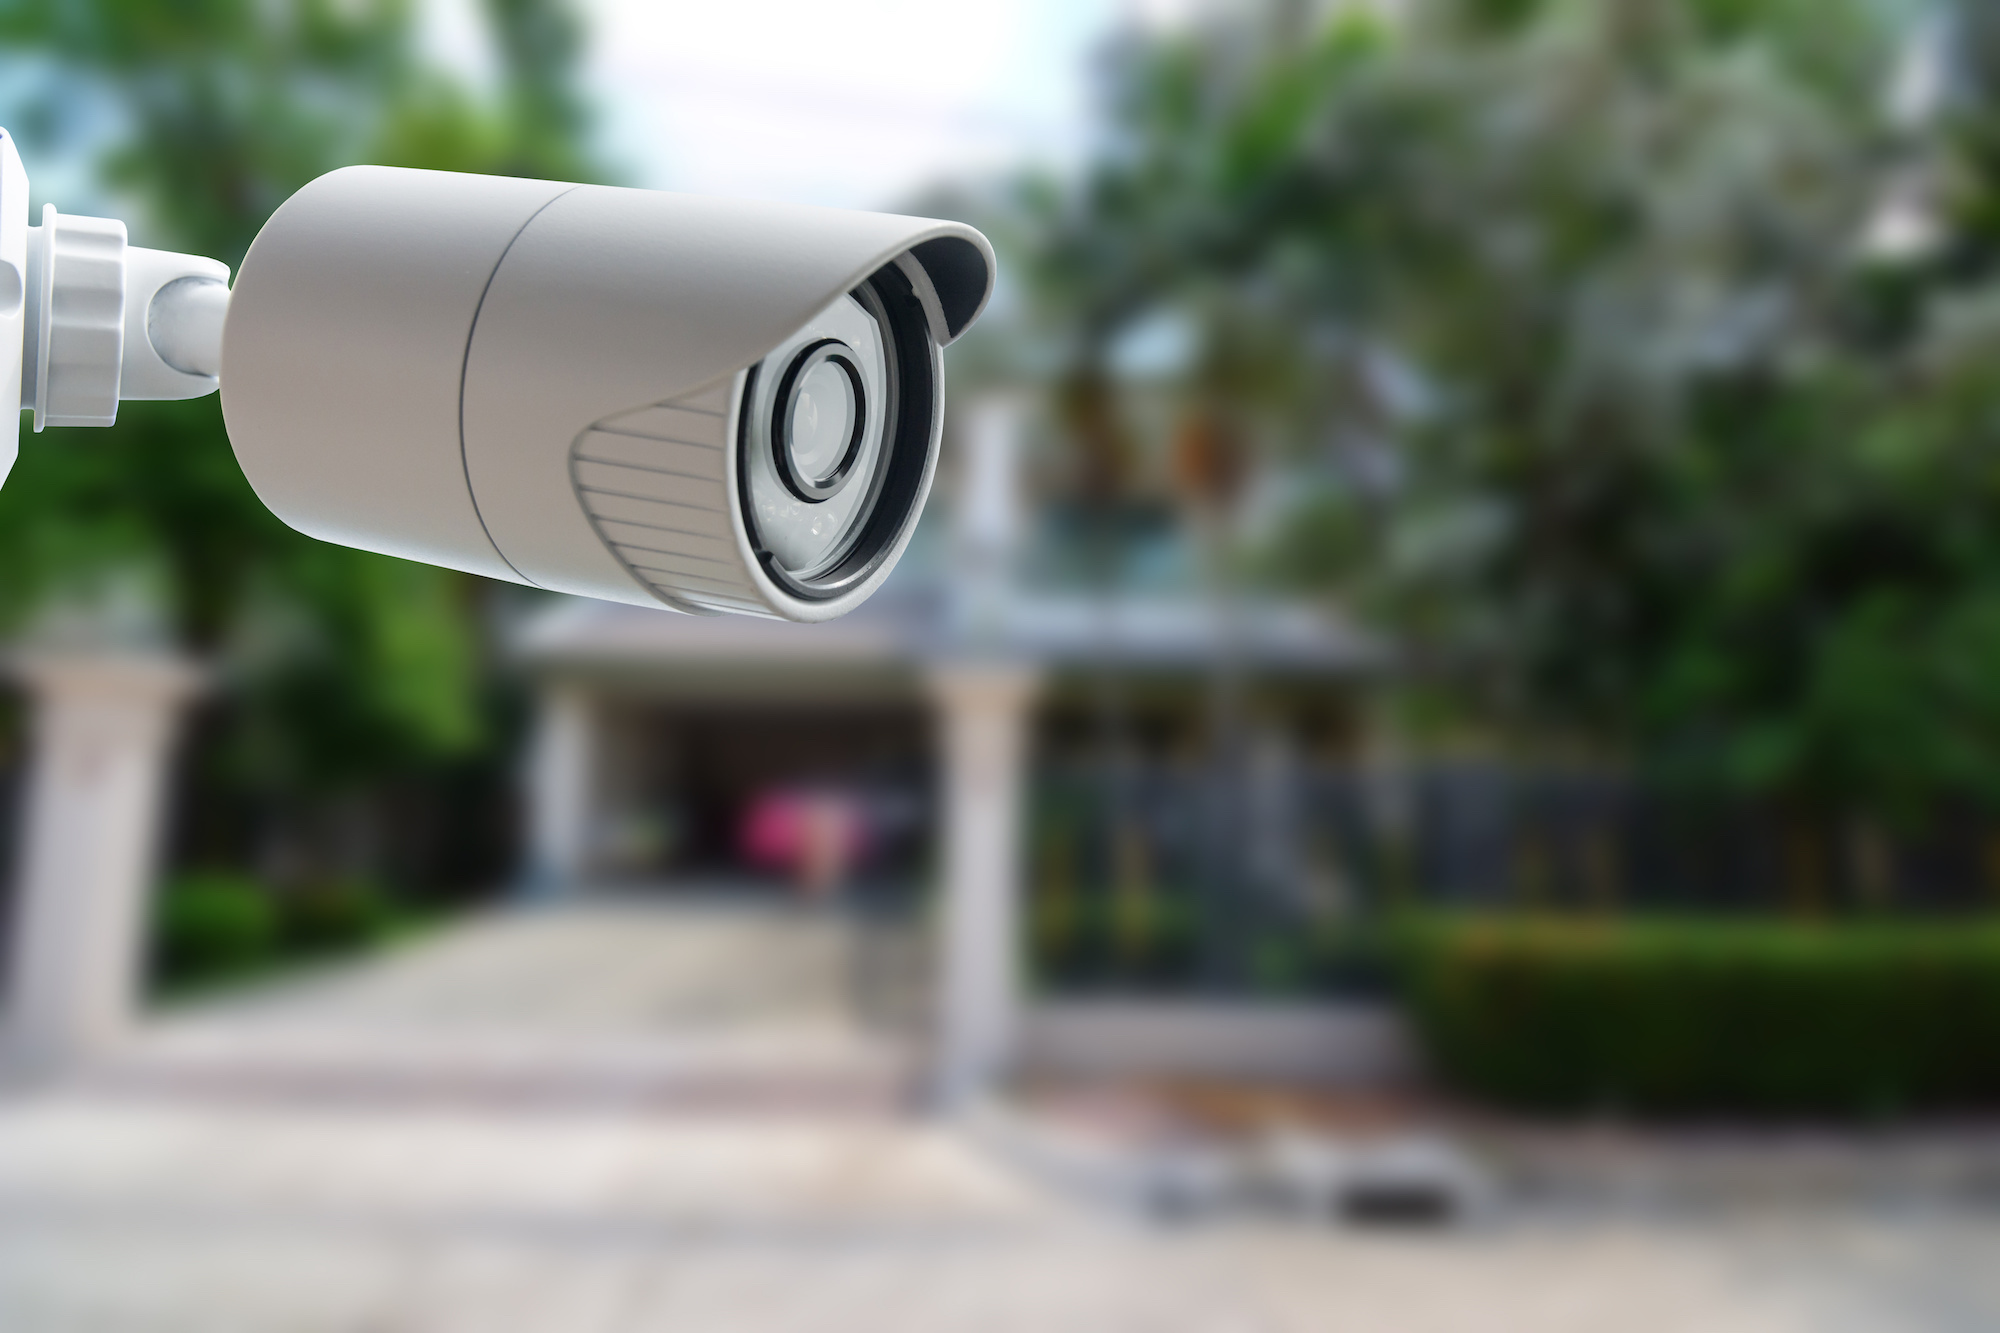 Camera systems - Learn More